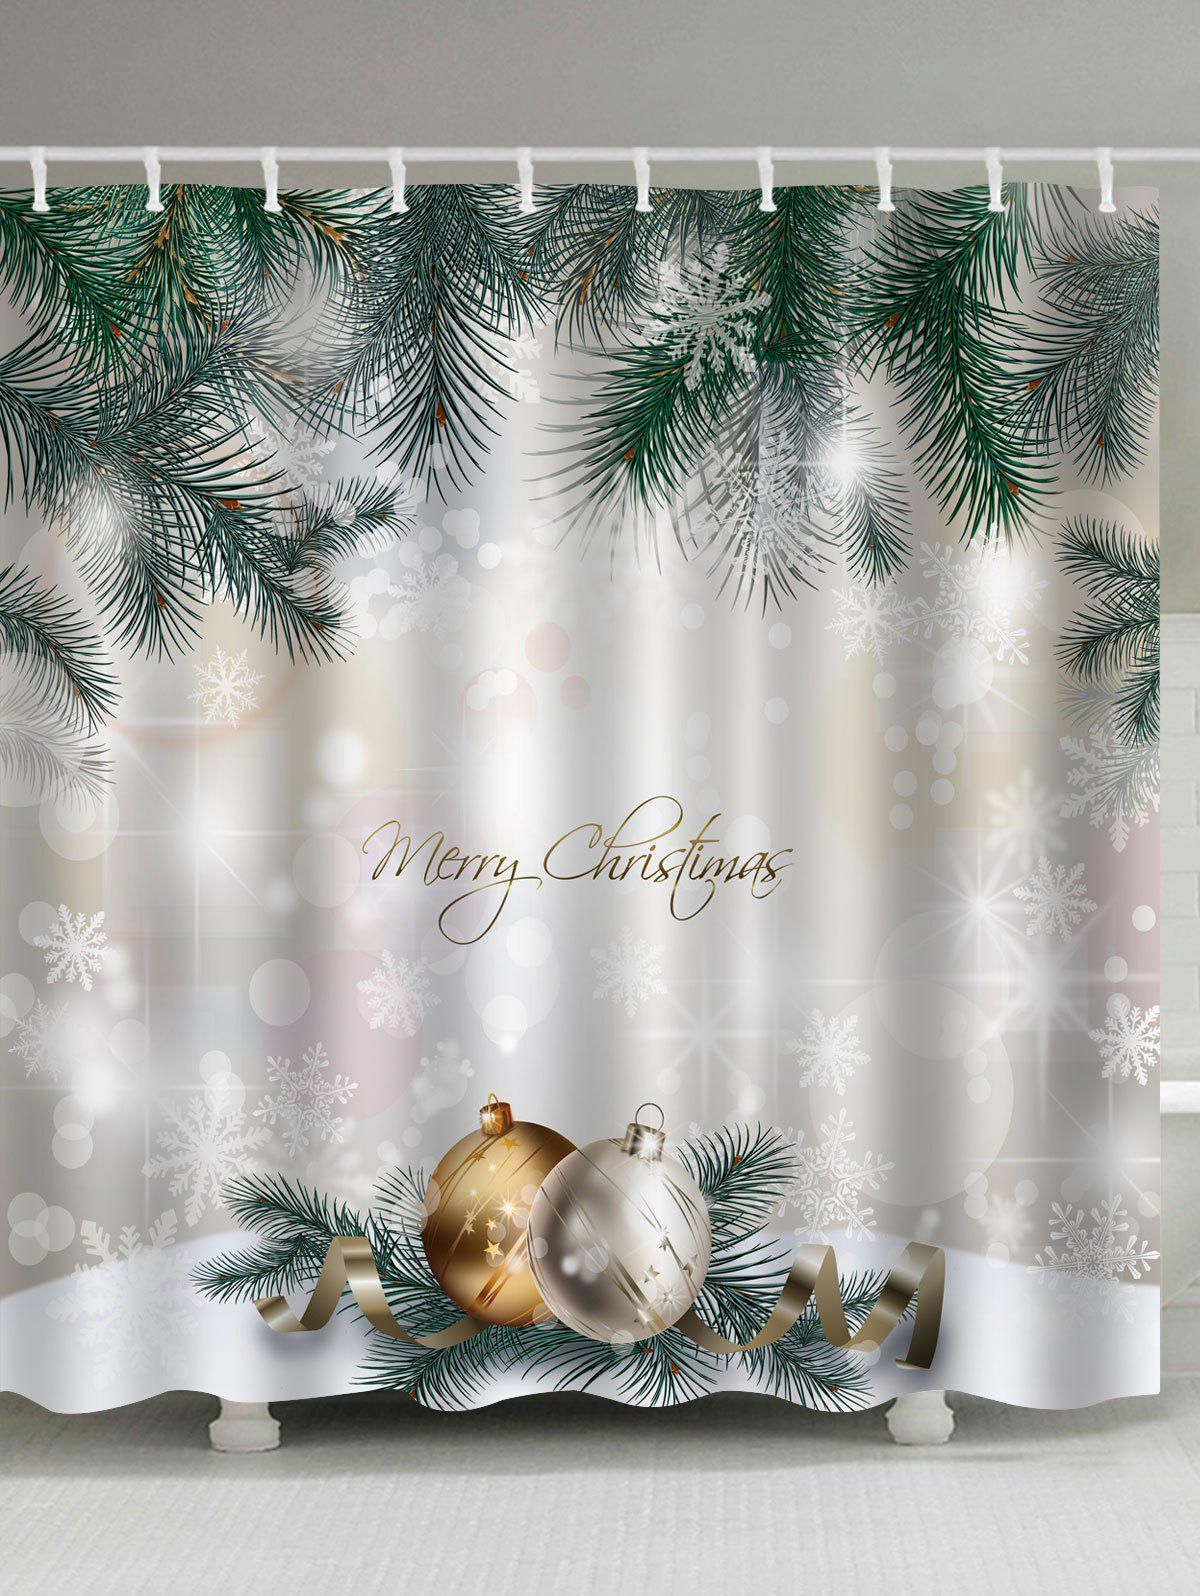 Christmas Pine Baubles Print Fabric Waterproof Bathroom Shower CurtainHOME<br><br>Size: W59 INCH * L71 INCH; Color: COLORMIX; Products Type: Shower Curtains; Materials: Polyester; Pattern: Ball,Letter; Style: Festival; Number of Hook Holes: W59 inch*L71 inch: 10; W71 inch*L71 inch: 12; W71 inch*L79 inch: 12; Package Contents: 1 x Shower Curtain  1 x Hooks (Set);